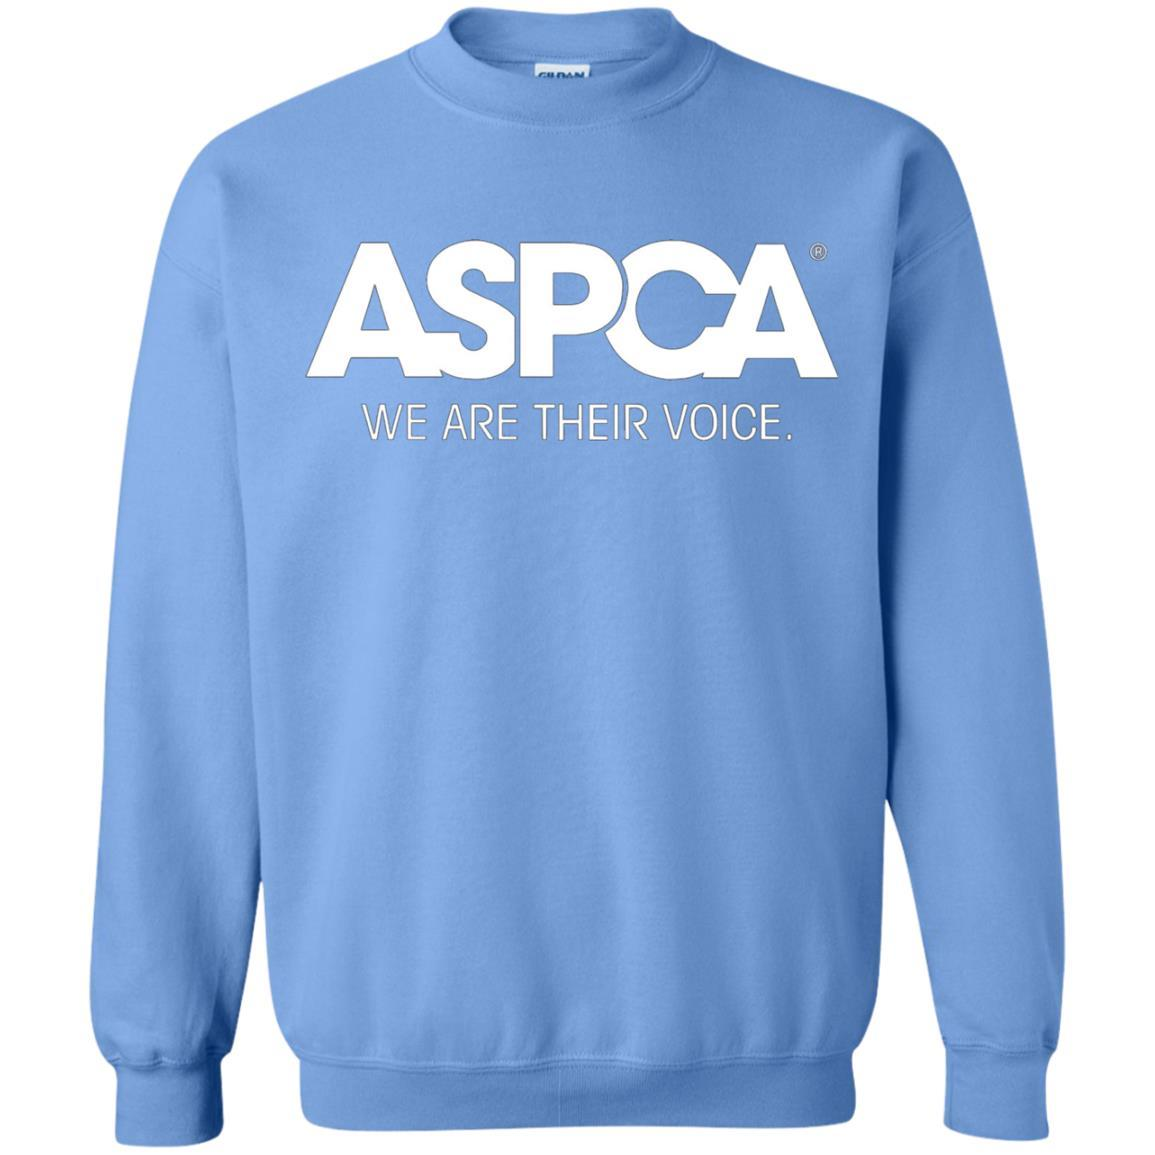 ASPCA Apparel - Crewneck Pullover Sweatshirt Carolina Blue / 5XL